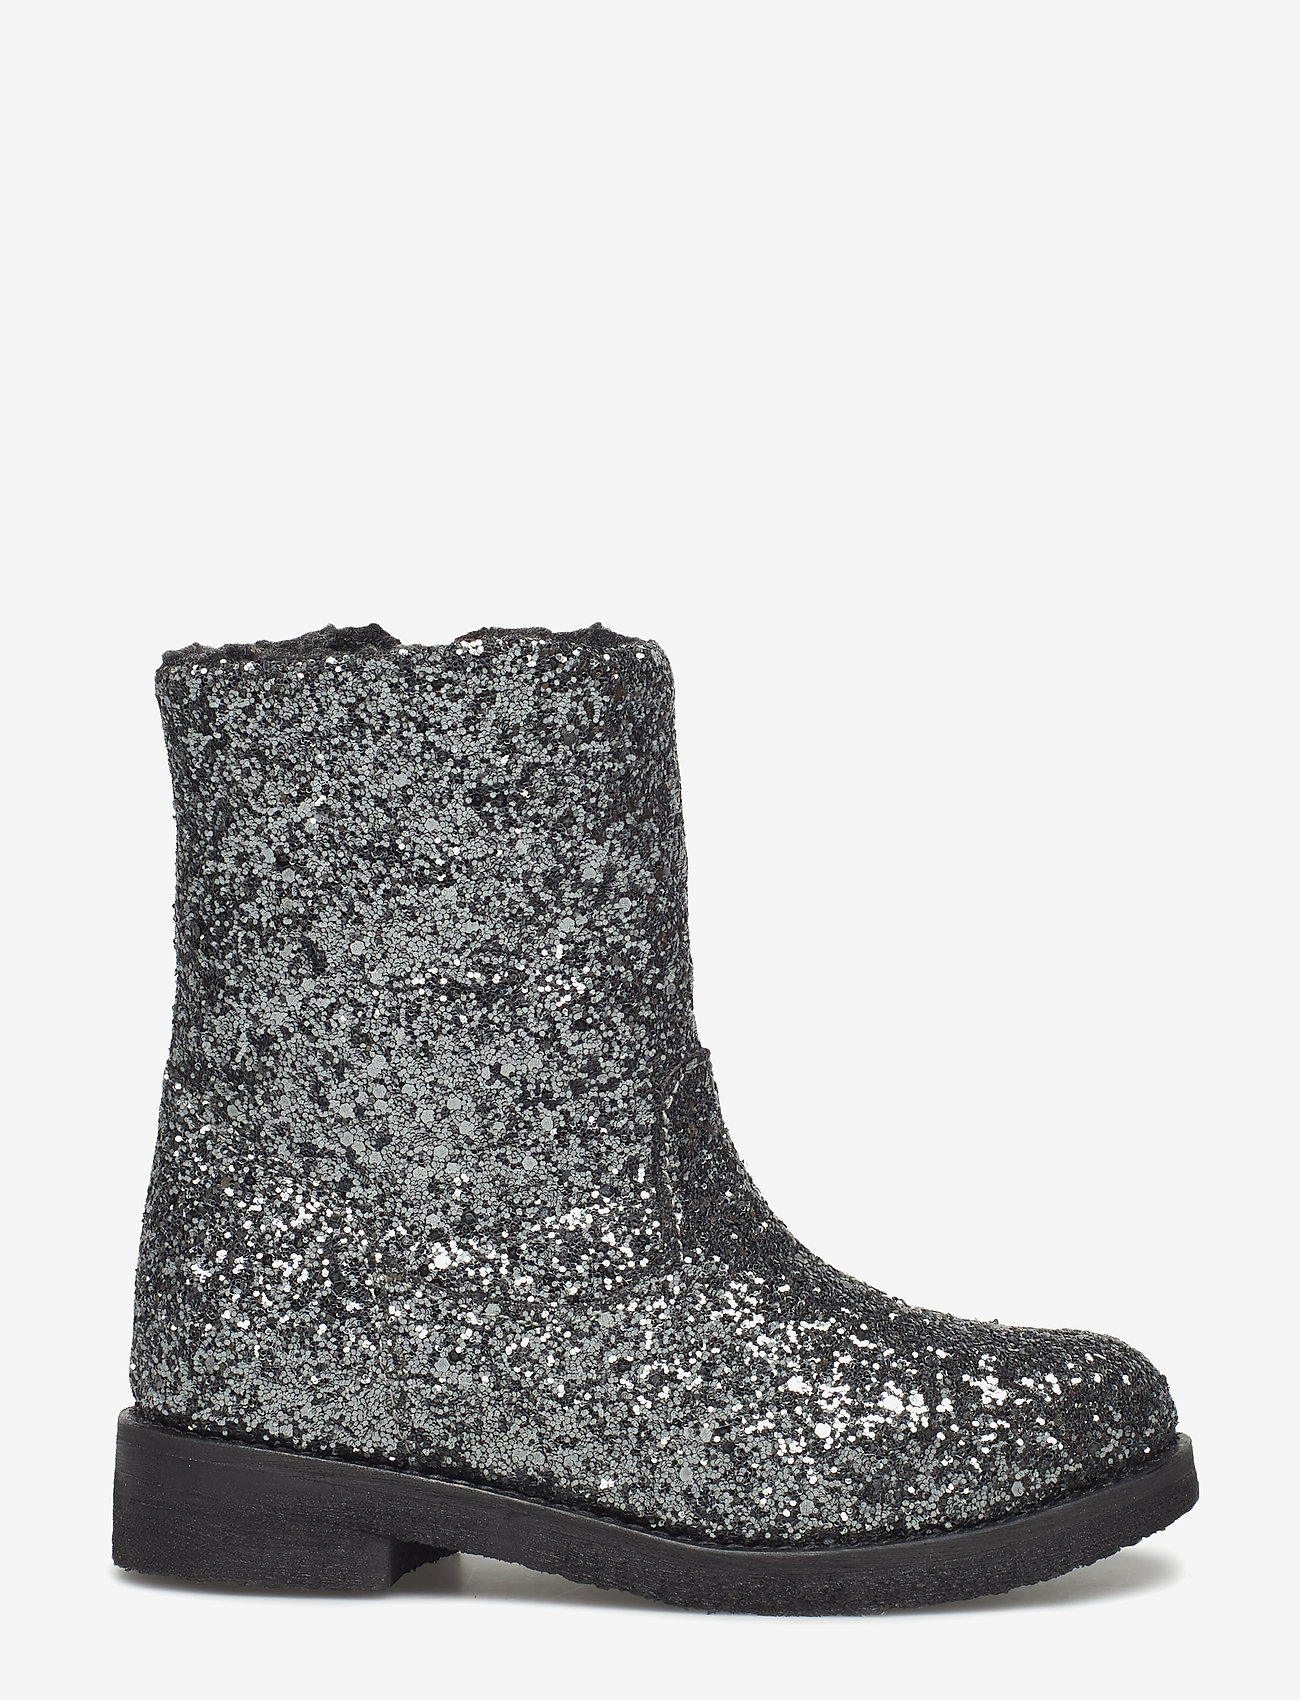 Petit by Sofie Schnoor - Glitter boot - bottes - antracite - 1